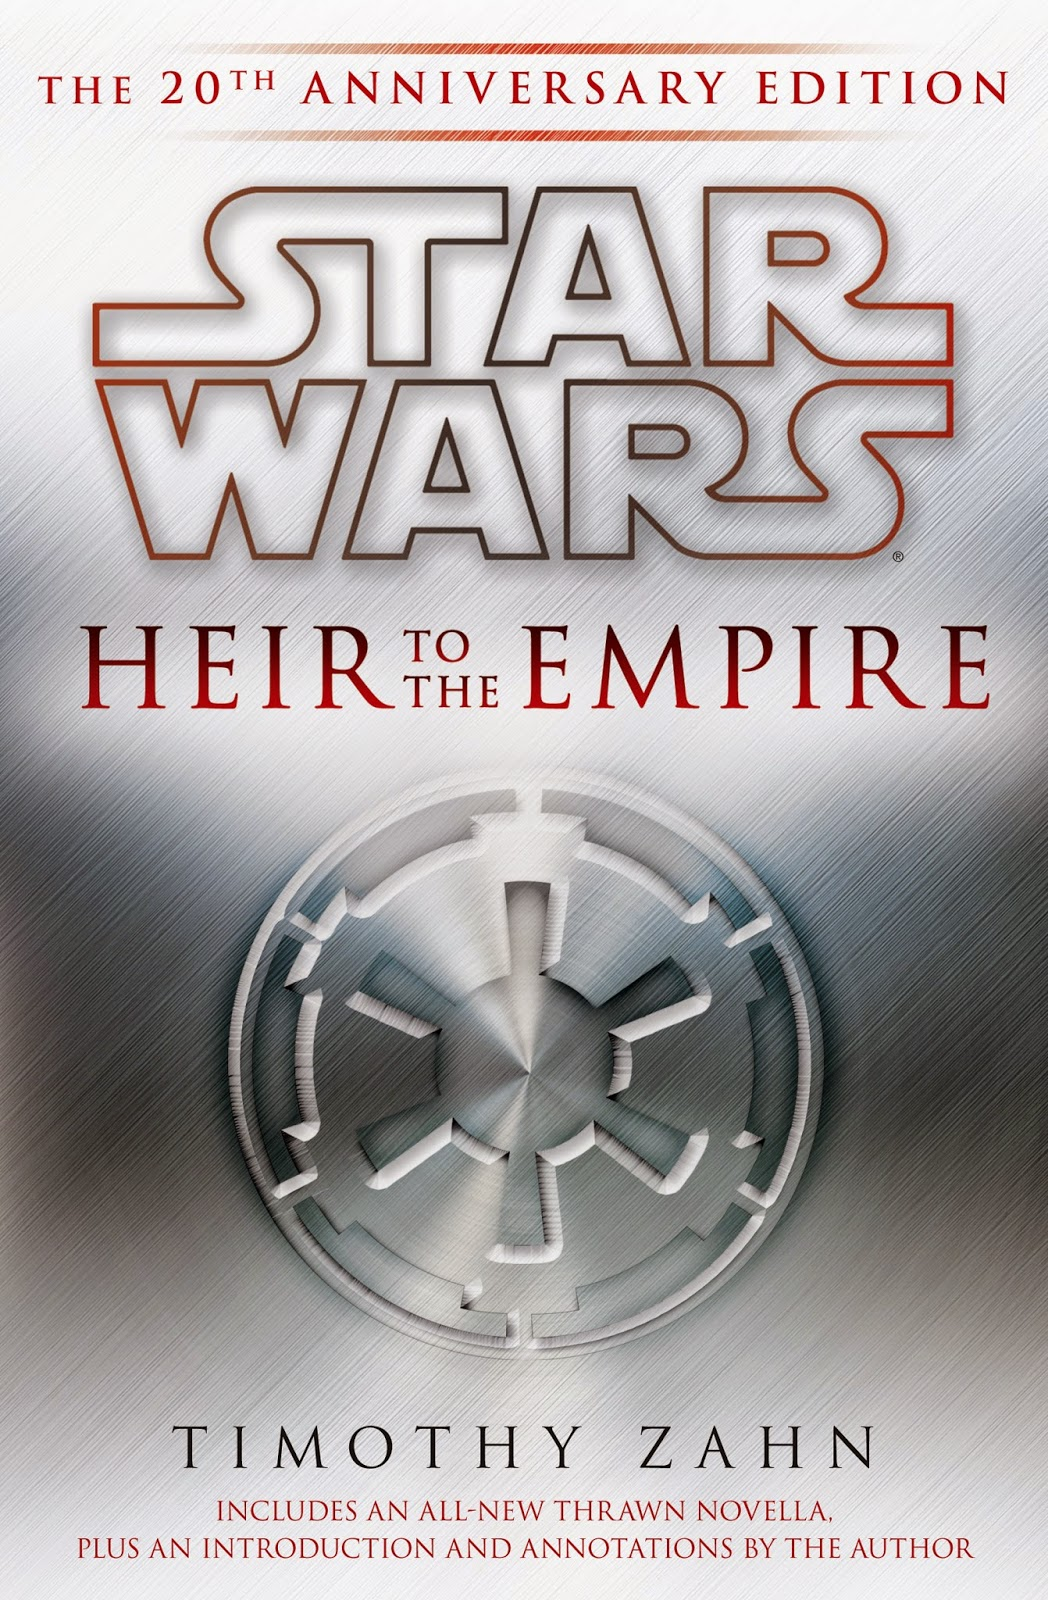 Timothy Zahn's annotated Heir to the Empire